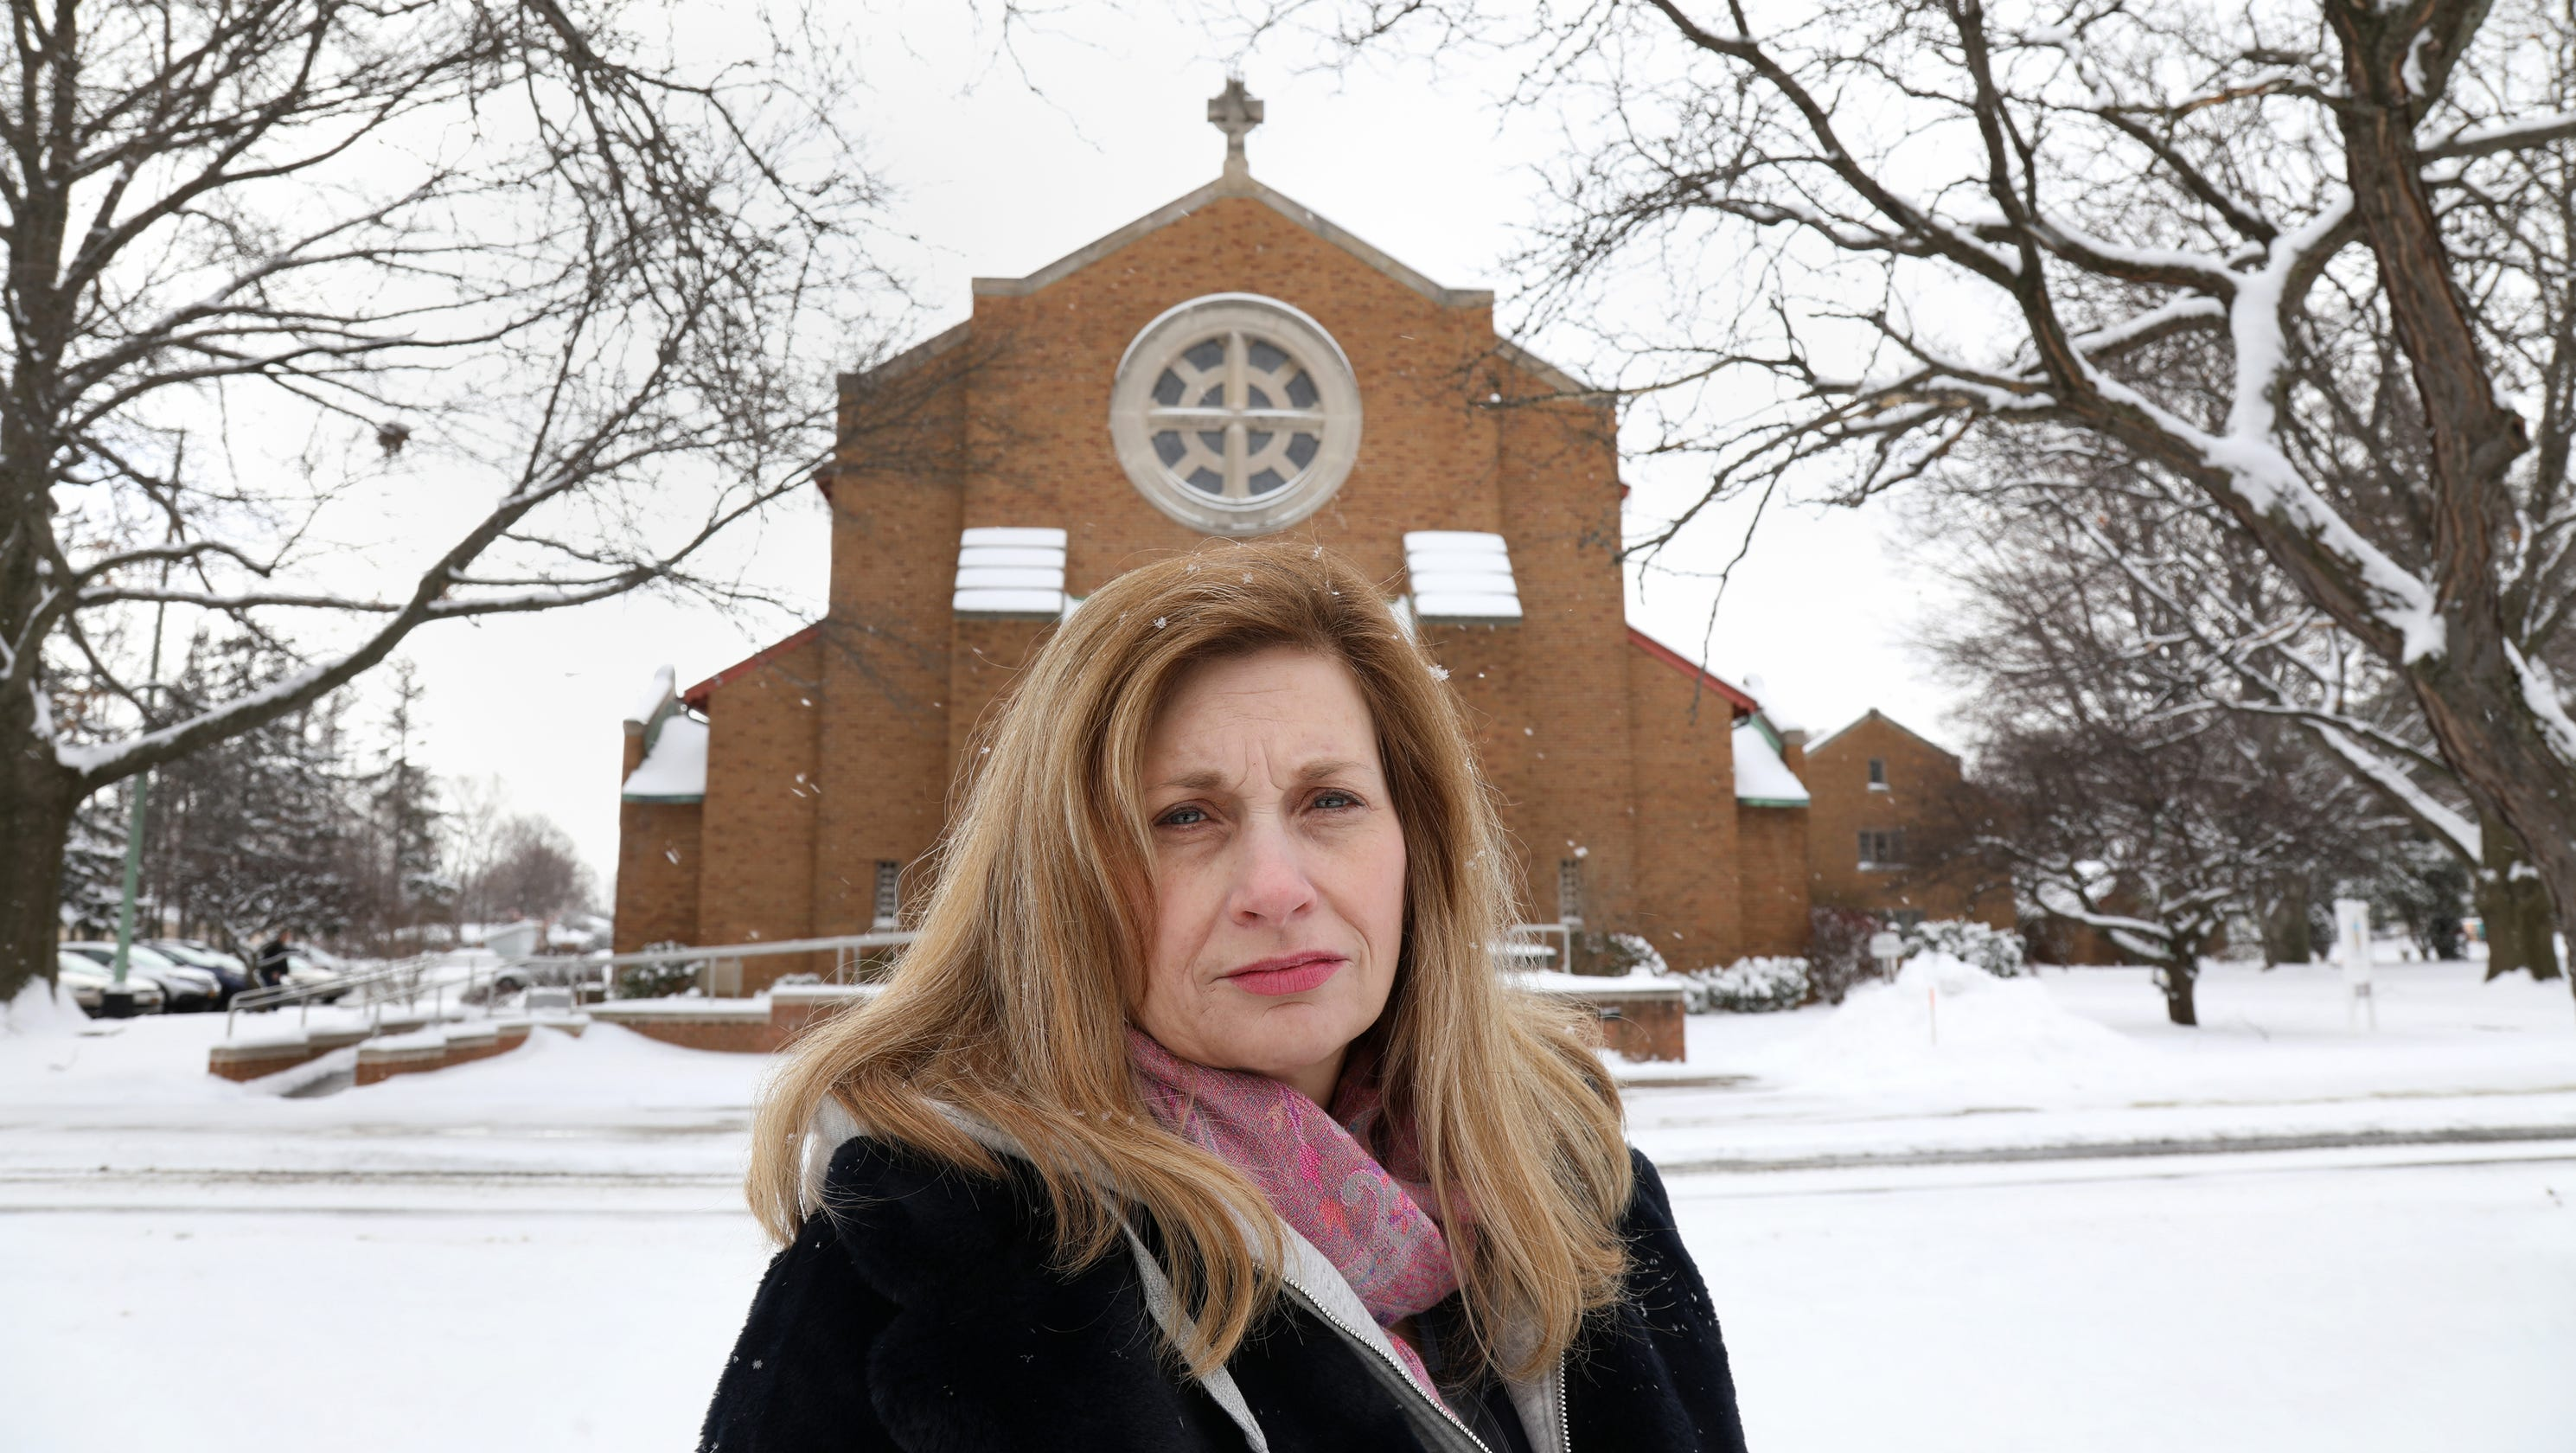 Catholic priest abuse scandal ensnares Rochester nun in